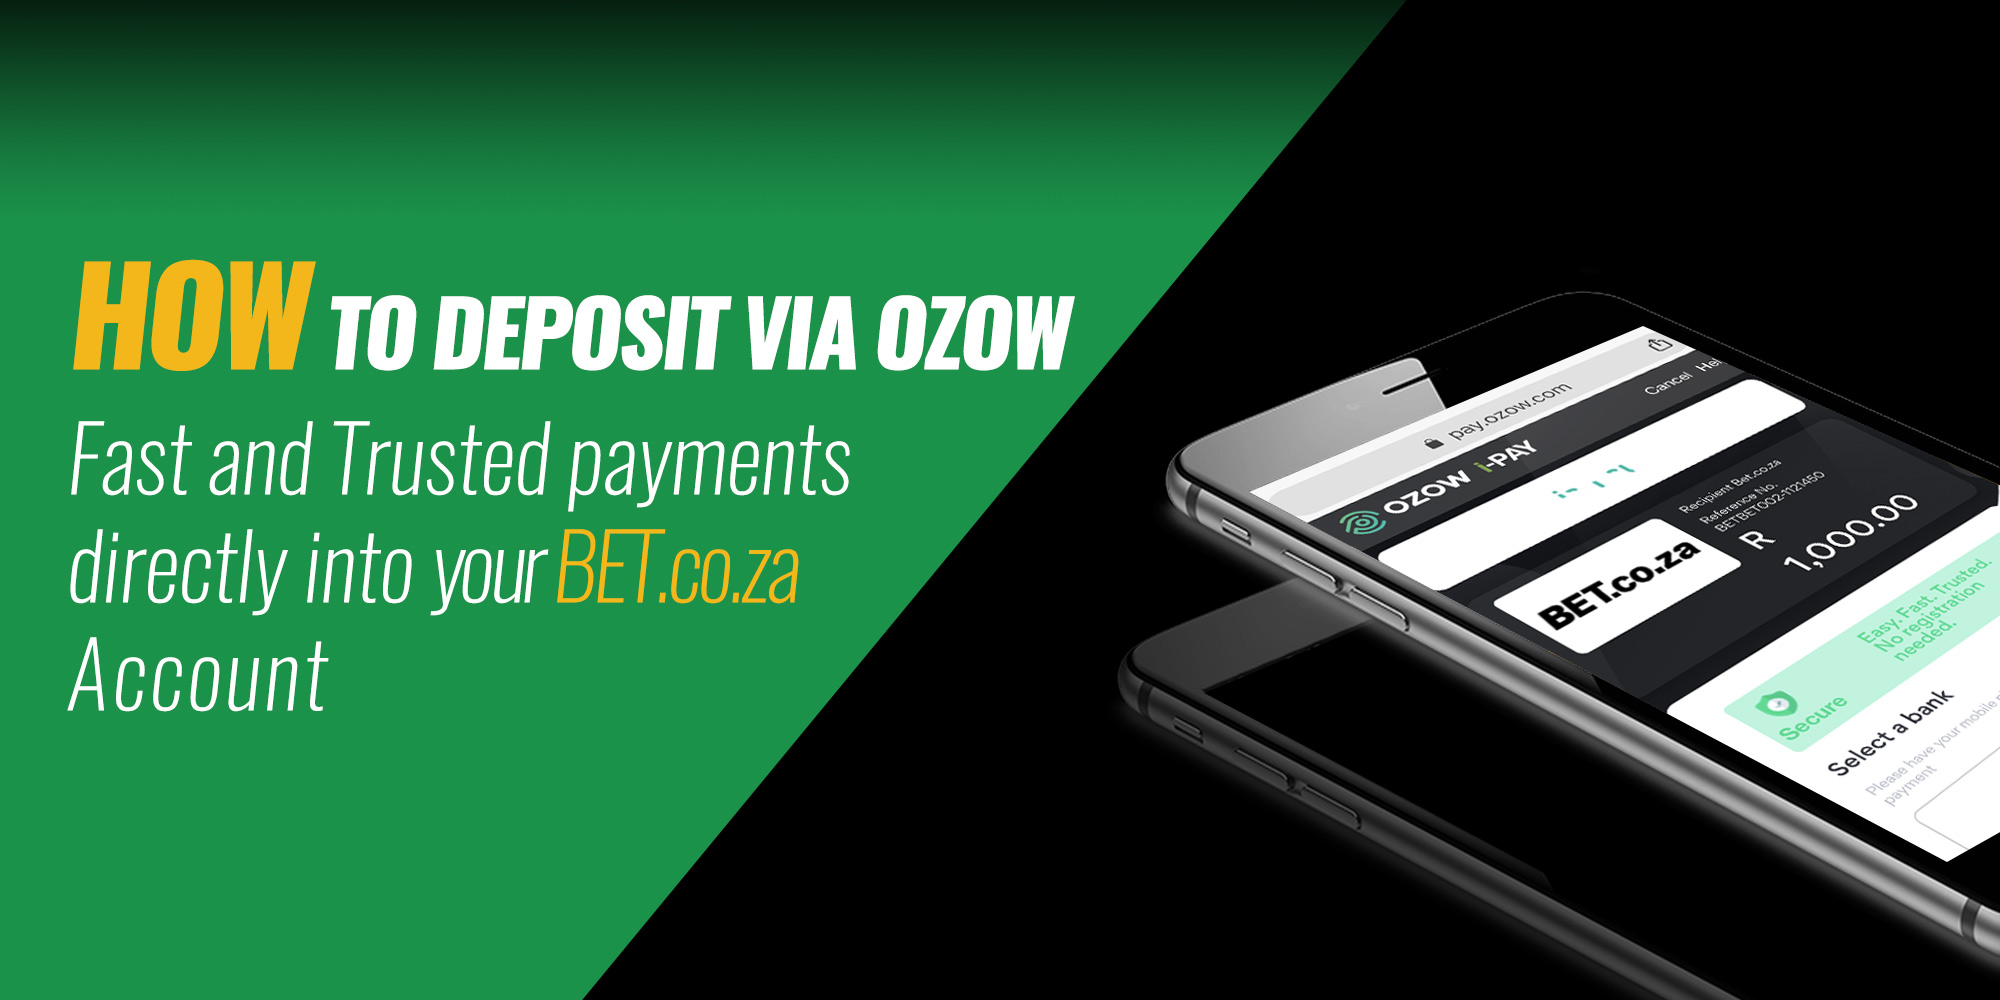 OZOW: HOW TO DEPOSIT ON BET.CO.ZA